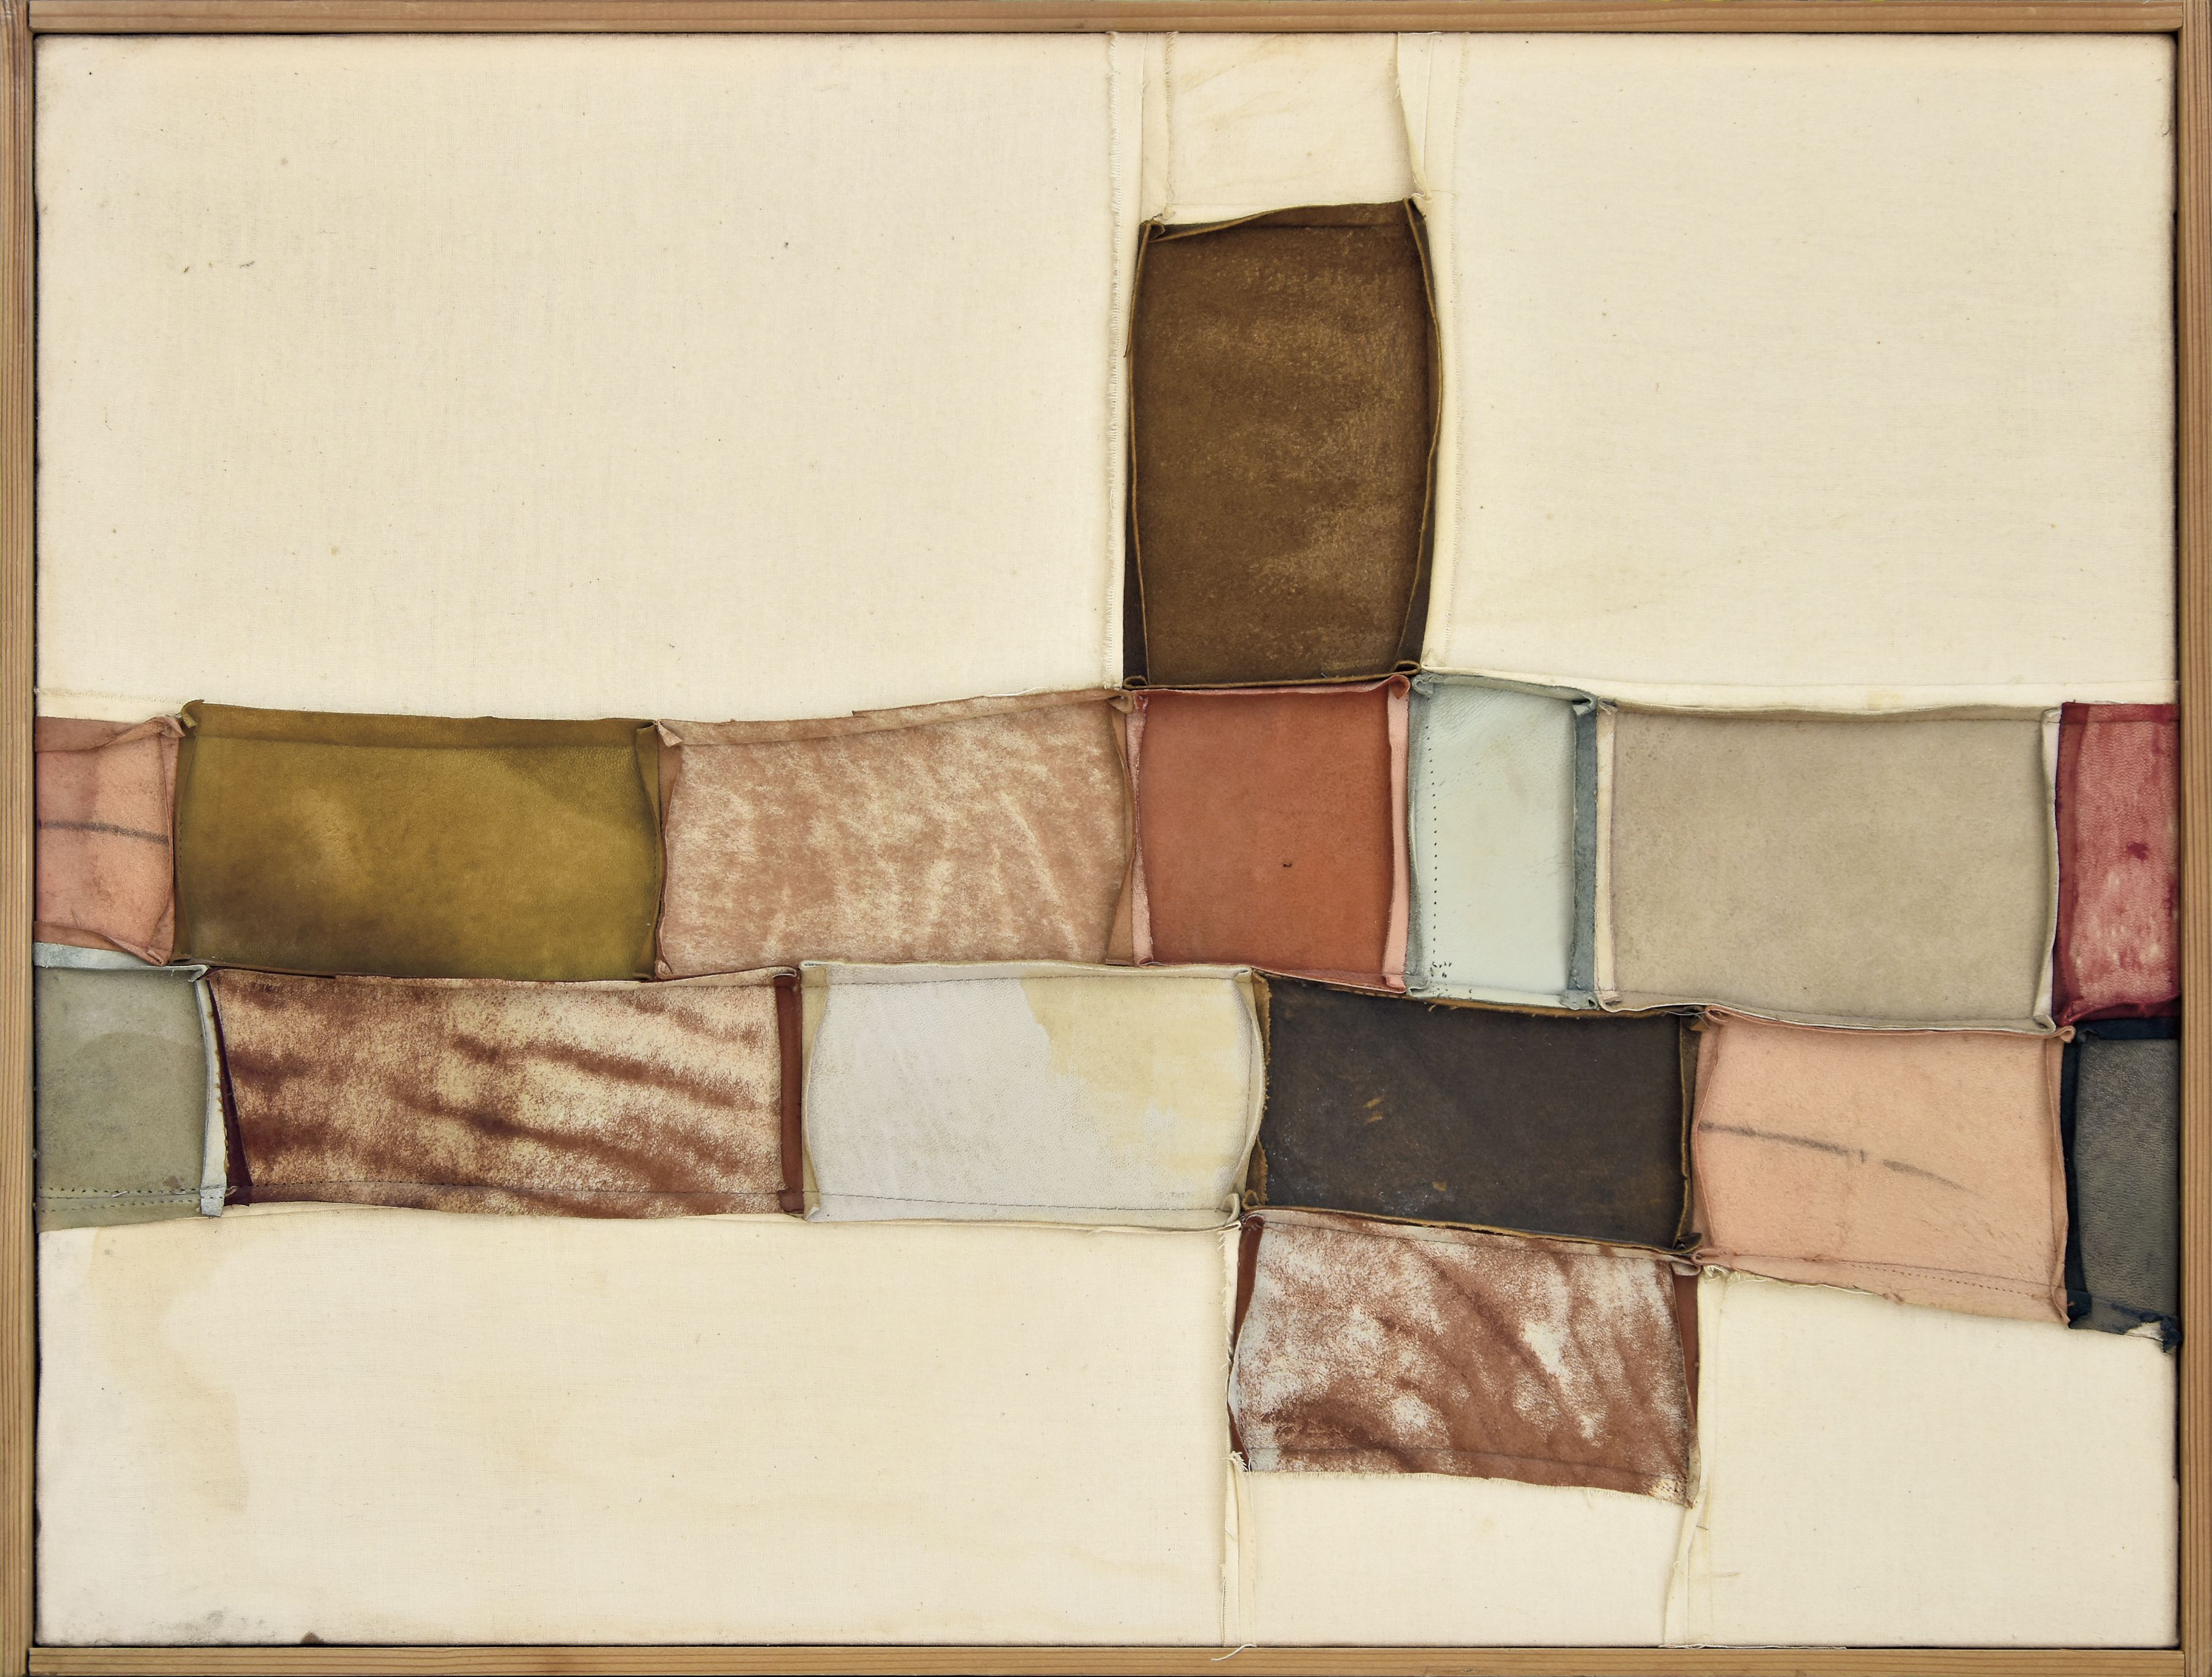 Nuvolo (Giorgio Ascani). Untitled. 1960. Sewn canvas and deerskin, 55 x 72 cm (21⅝ x 28⅜ in)